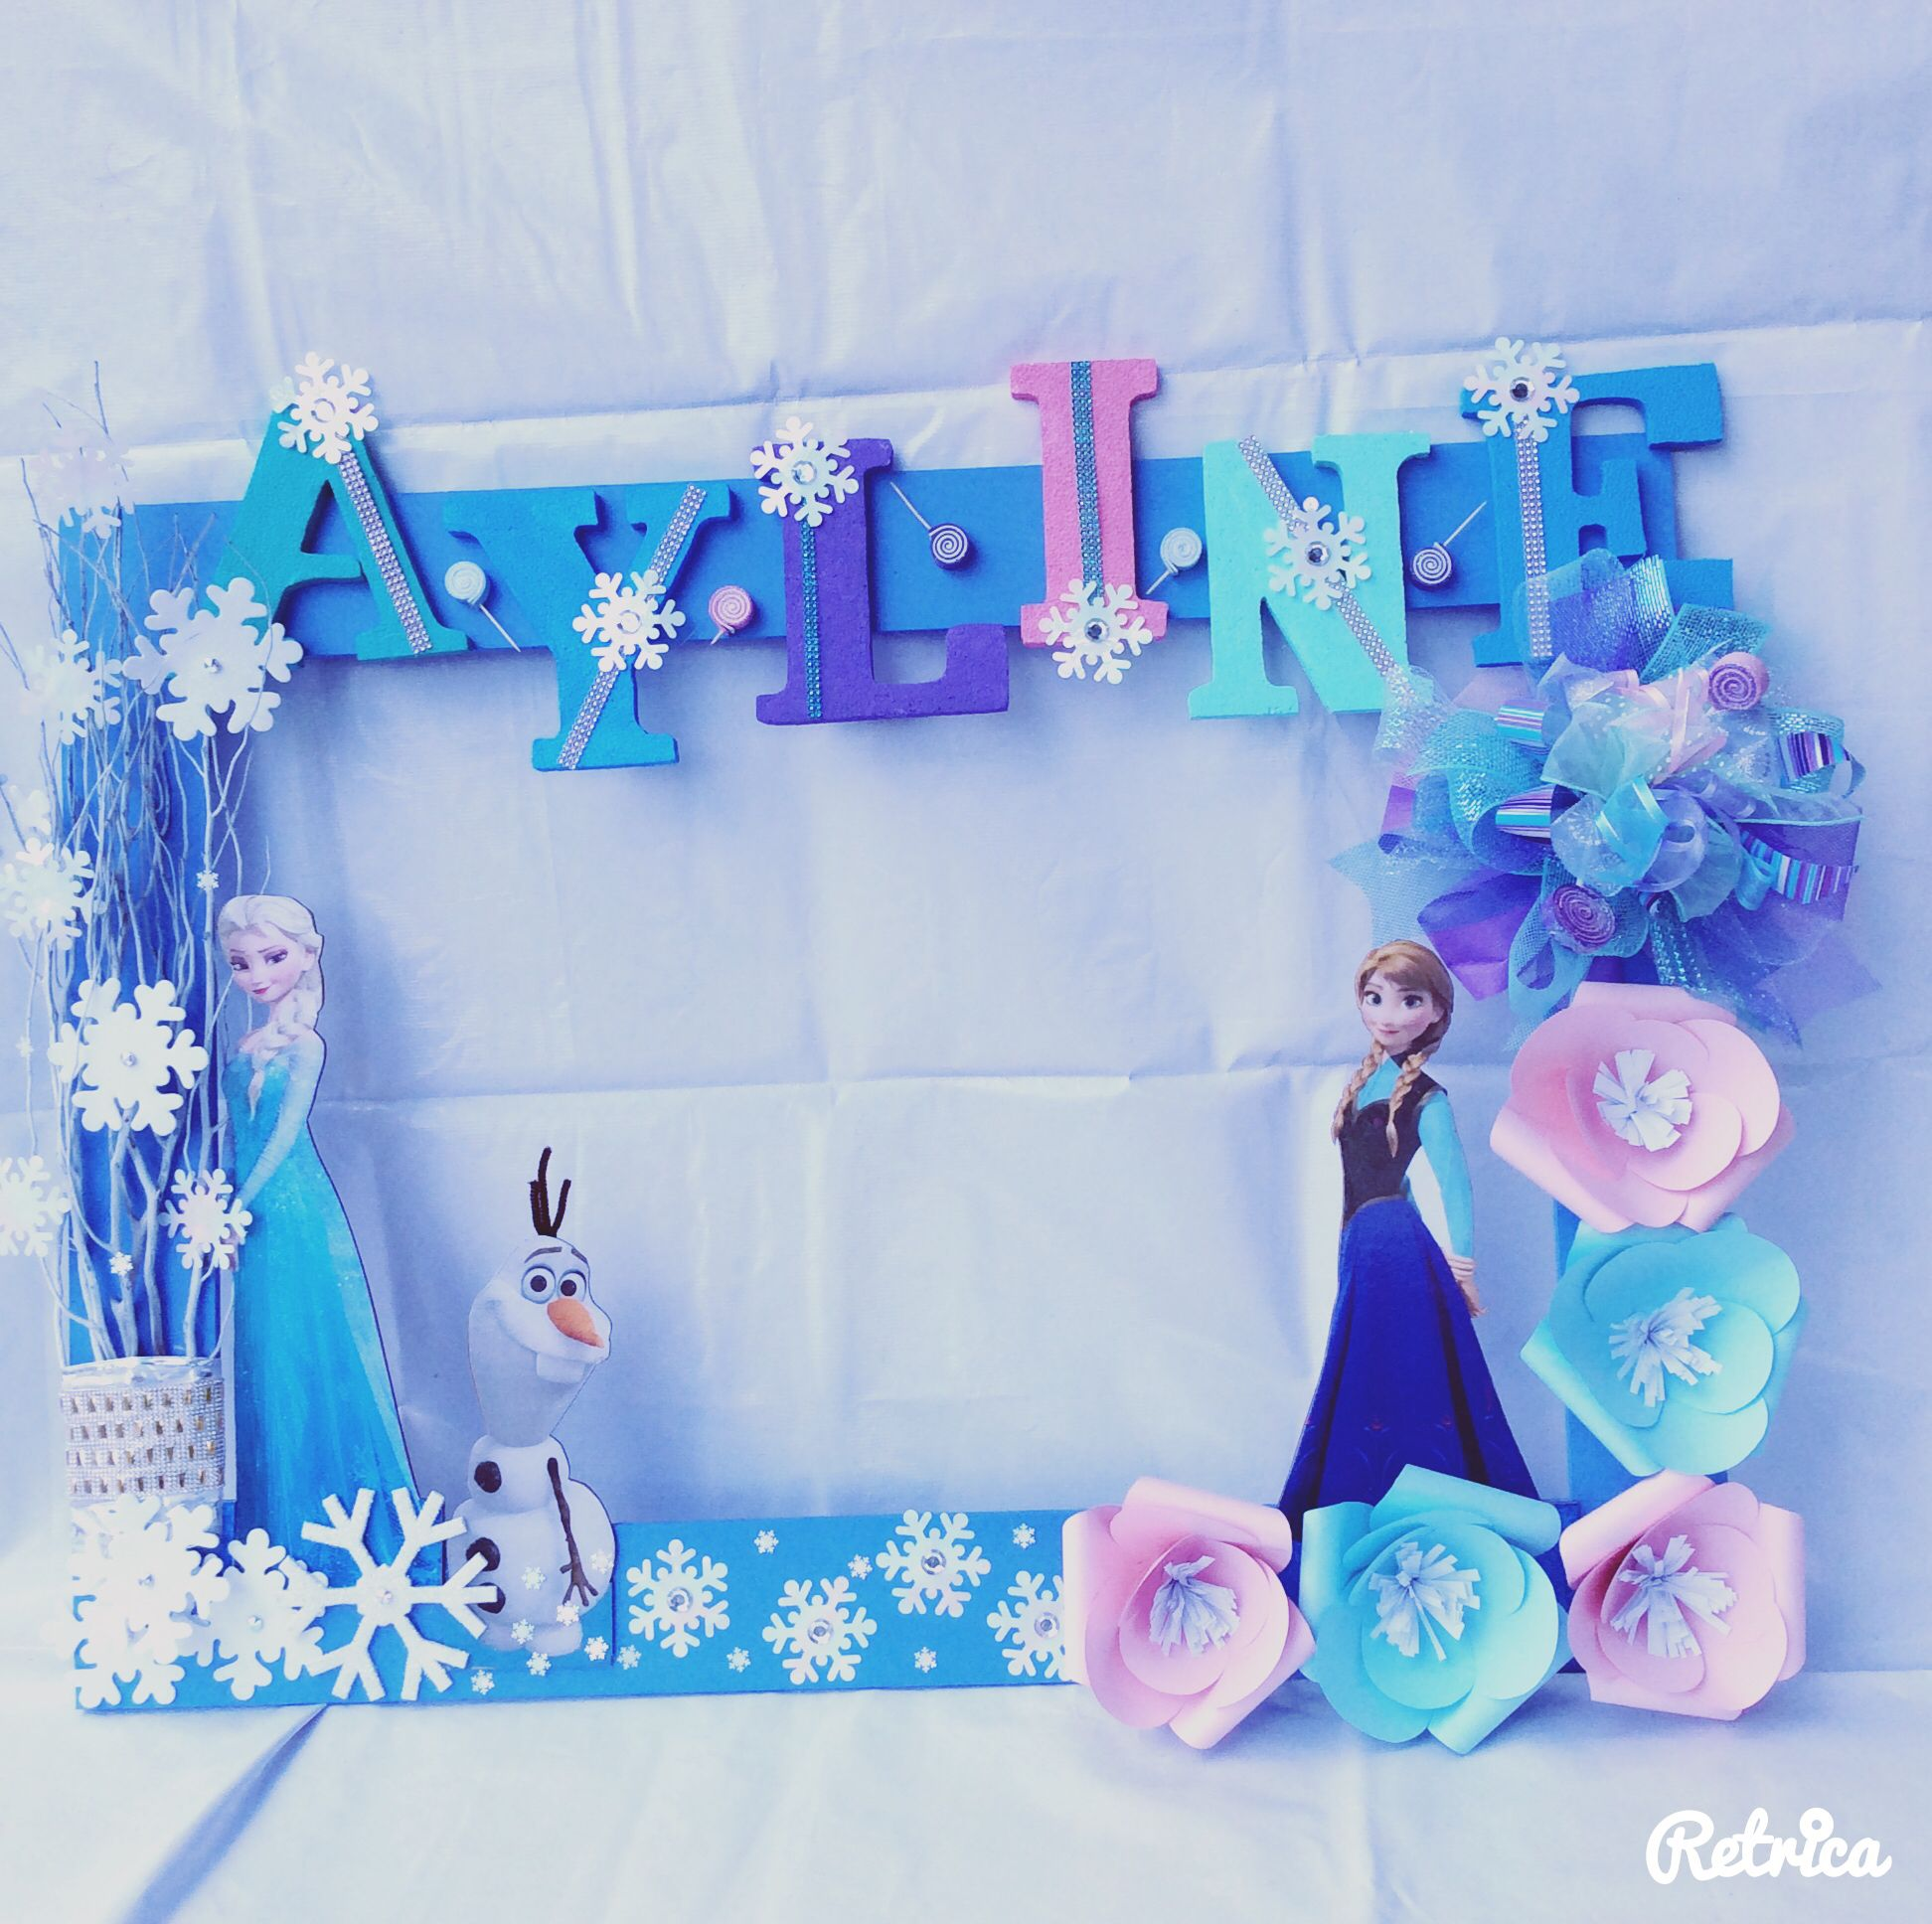 Marco frozen cuadros selfies pinterest frozen for Decoracion de marcos para fotos